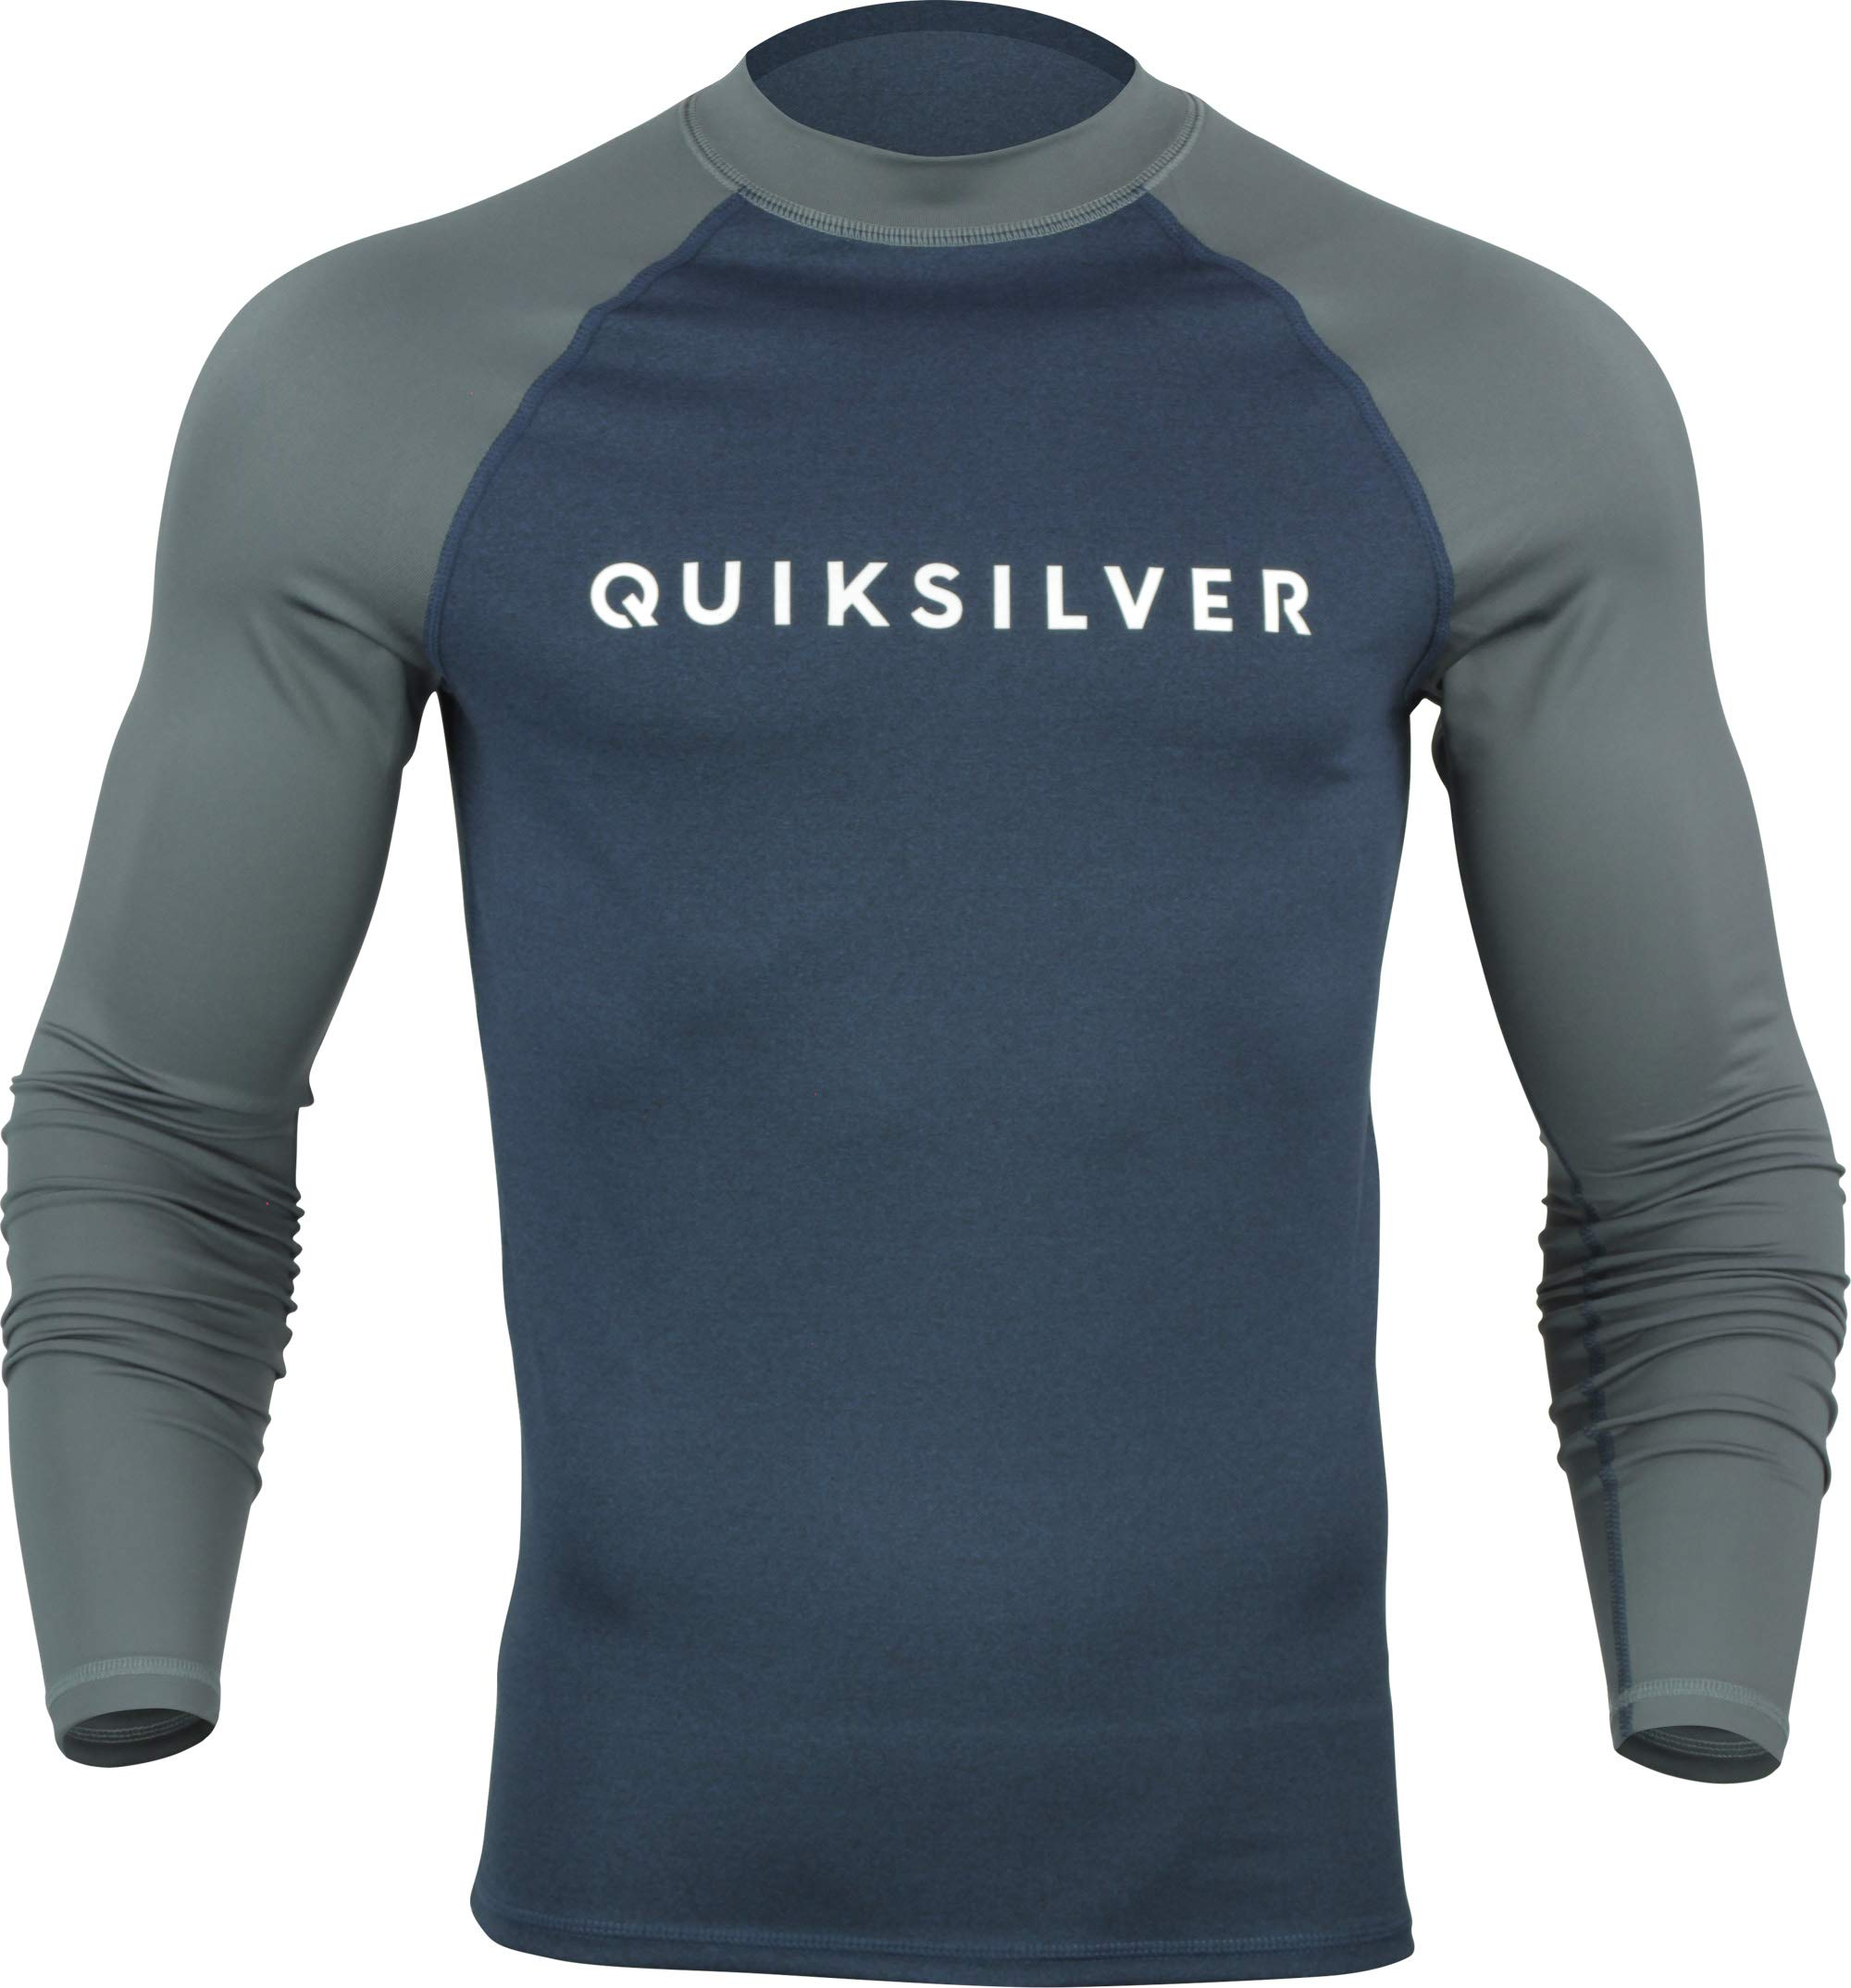 Quiksilver Always There Long Sleeve Rashguard Moonlit Ocean Heather MD by Quiksilver